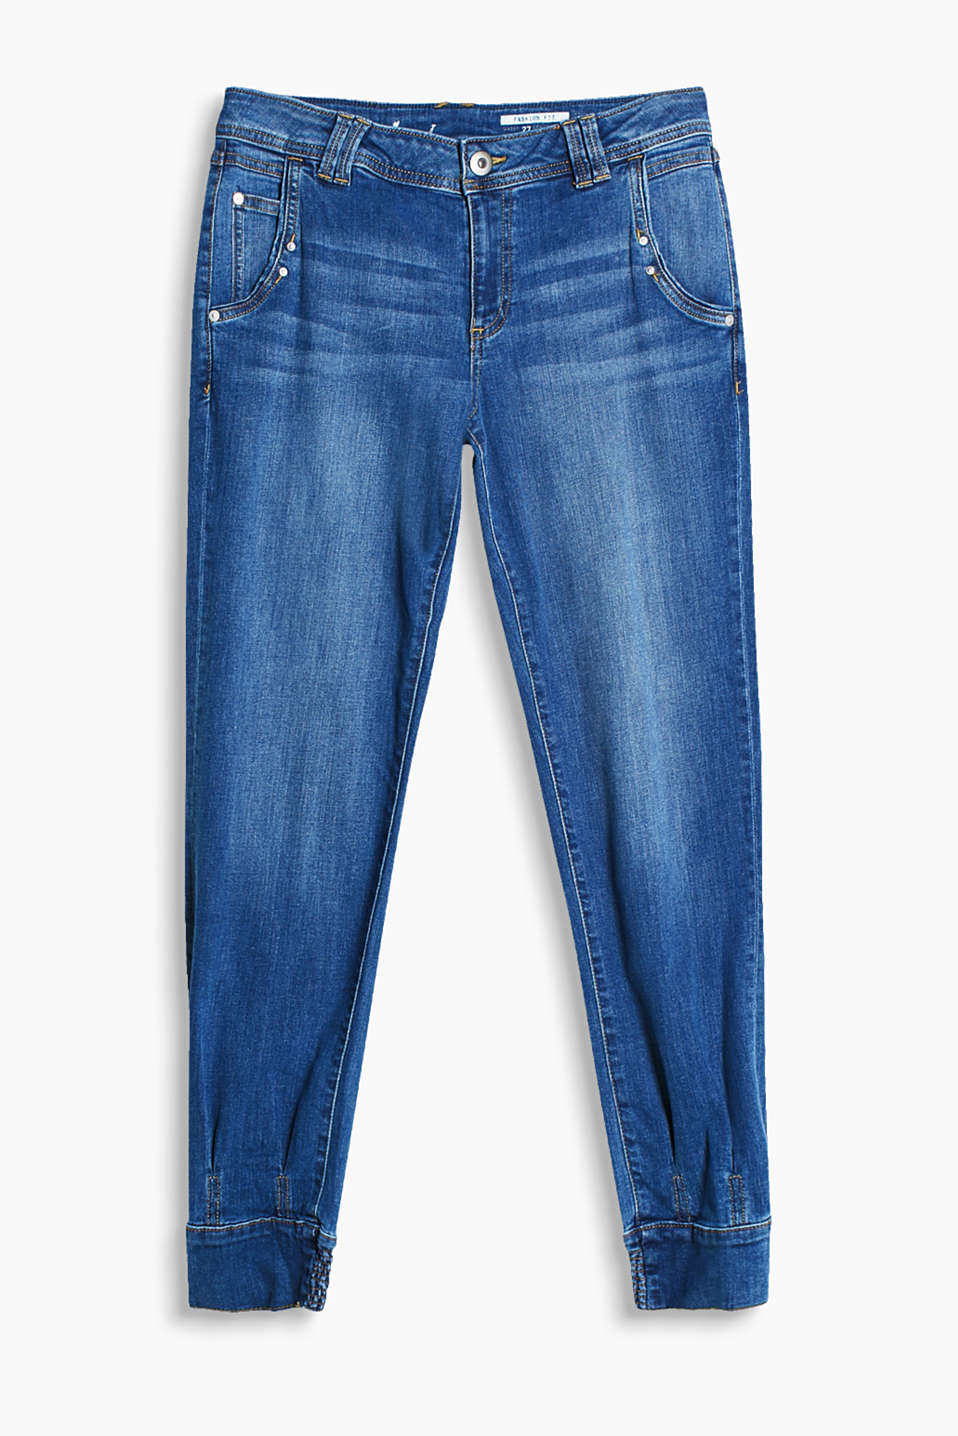 Relaxed jeans with washed-out effects and button-fastening elasticated cuffs on the leg hems